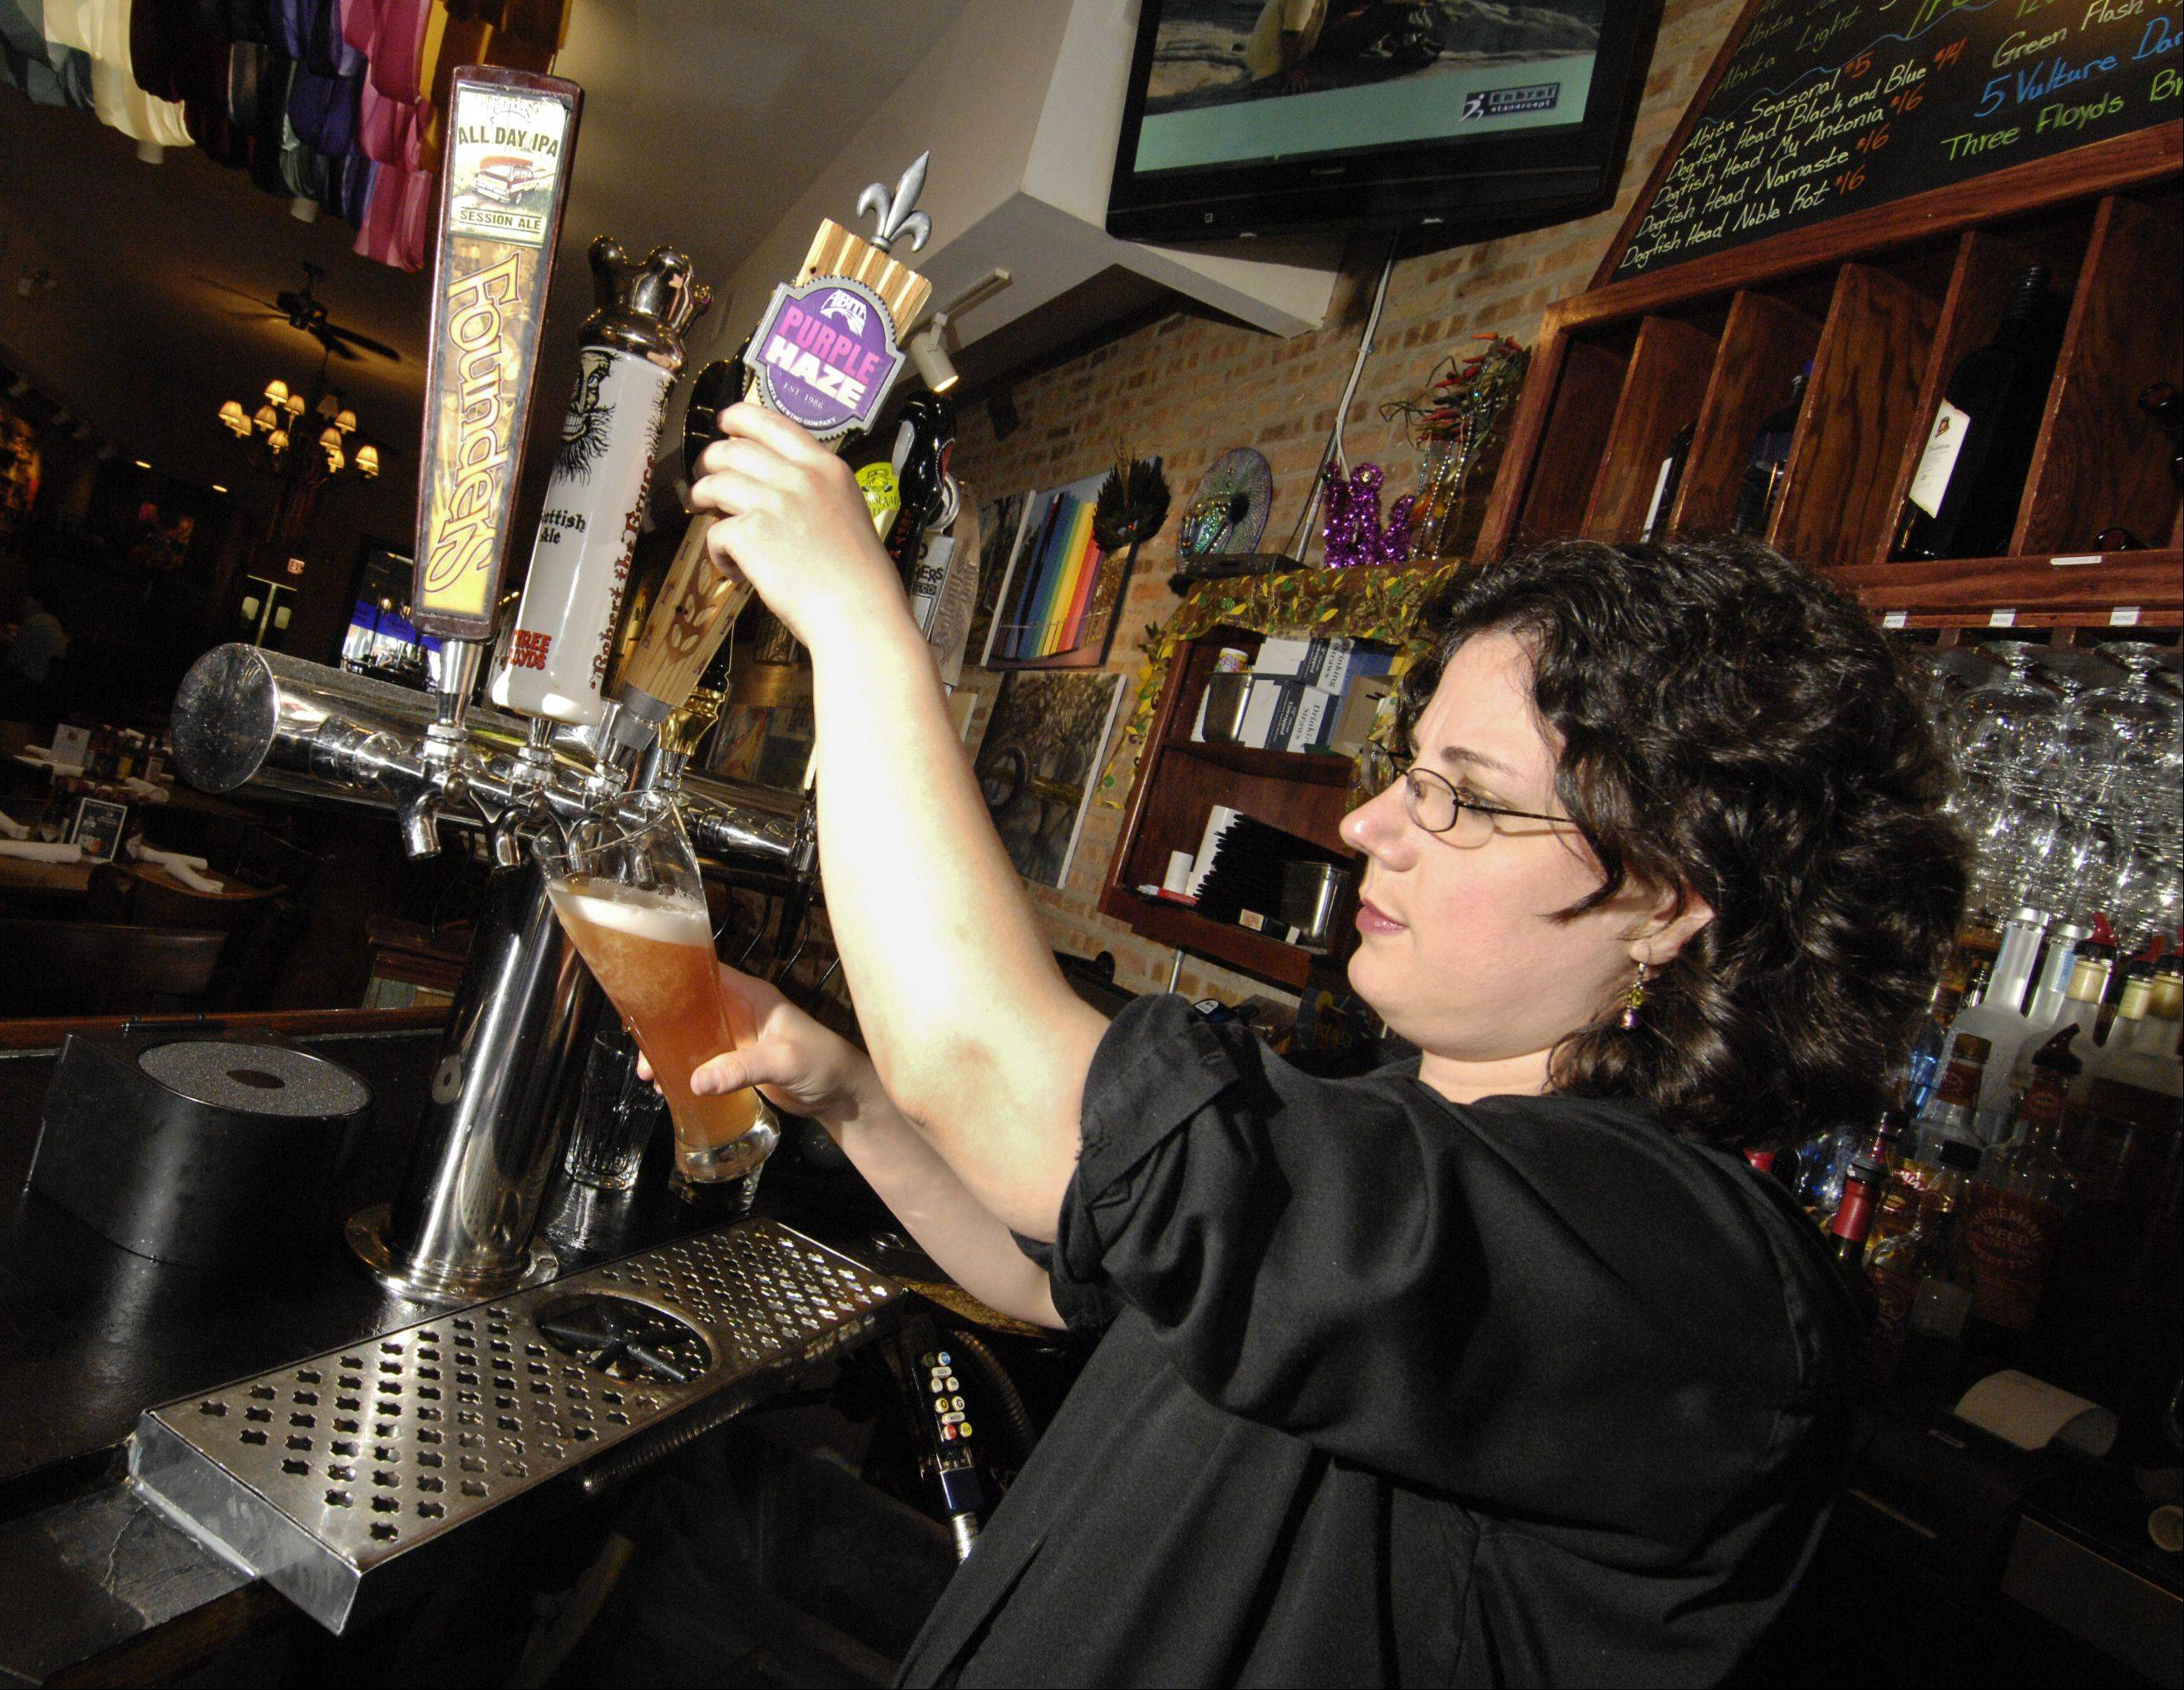 Bartender Ashley Penick pours a Purple Haze at Heaven on Seven in Naperville. The restaurant is one of many participating in Chicago Craft Beer Week.